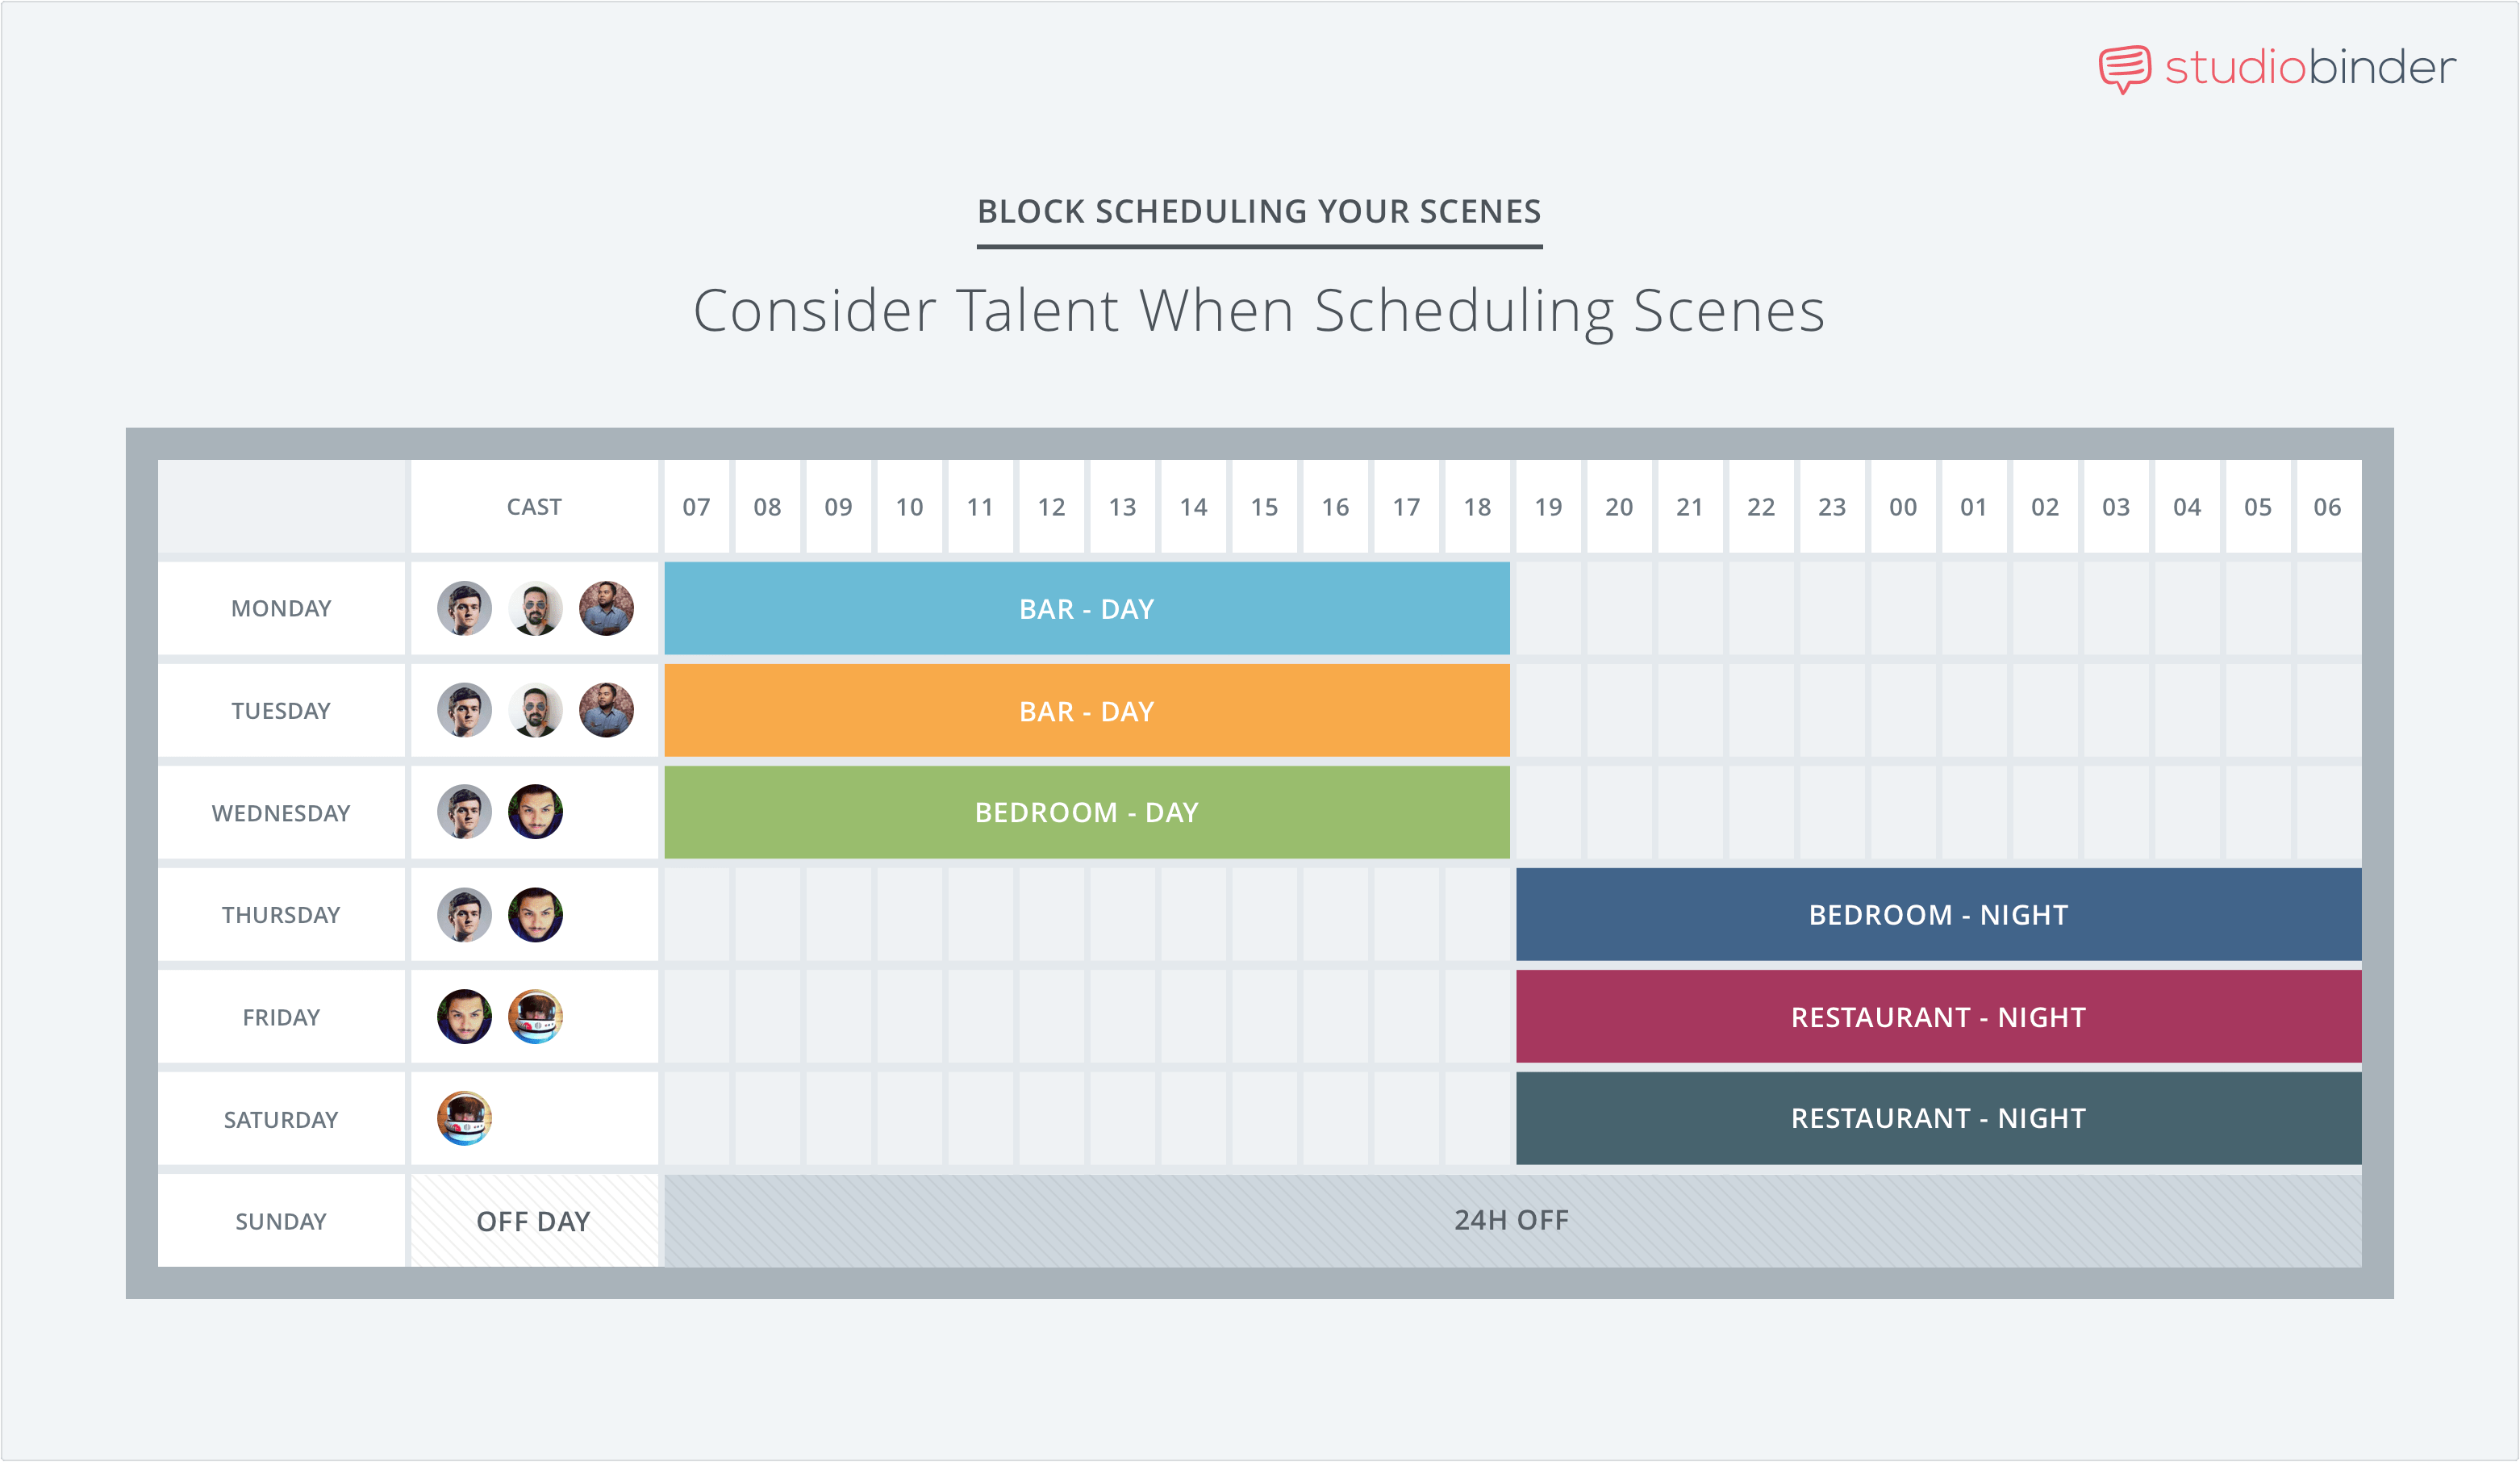 Actor Schedules Timesheets and SAG Exhibit G - 6 Common Shooting Schedule Mistakes - StudioBinder